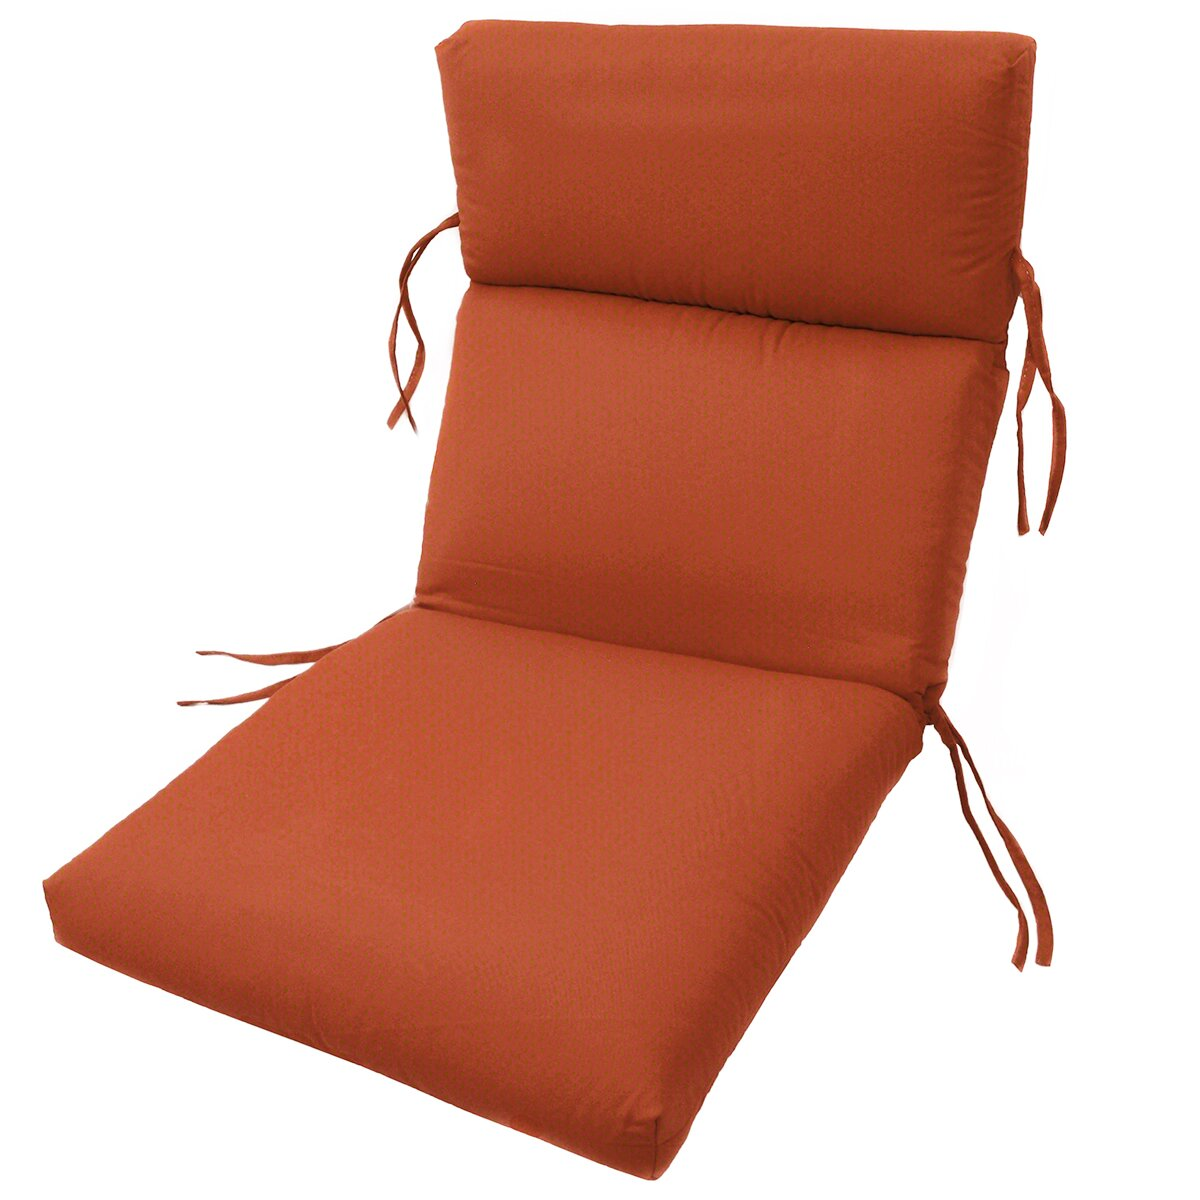 Patio lounge chair cushion - Comfort Classics Inc Lois Patio Lounge Chair Cushion